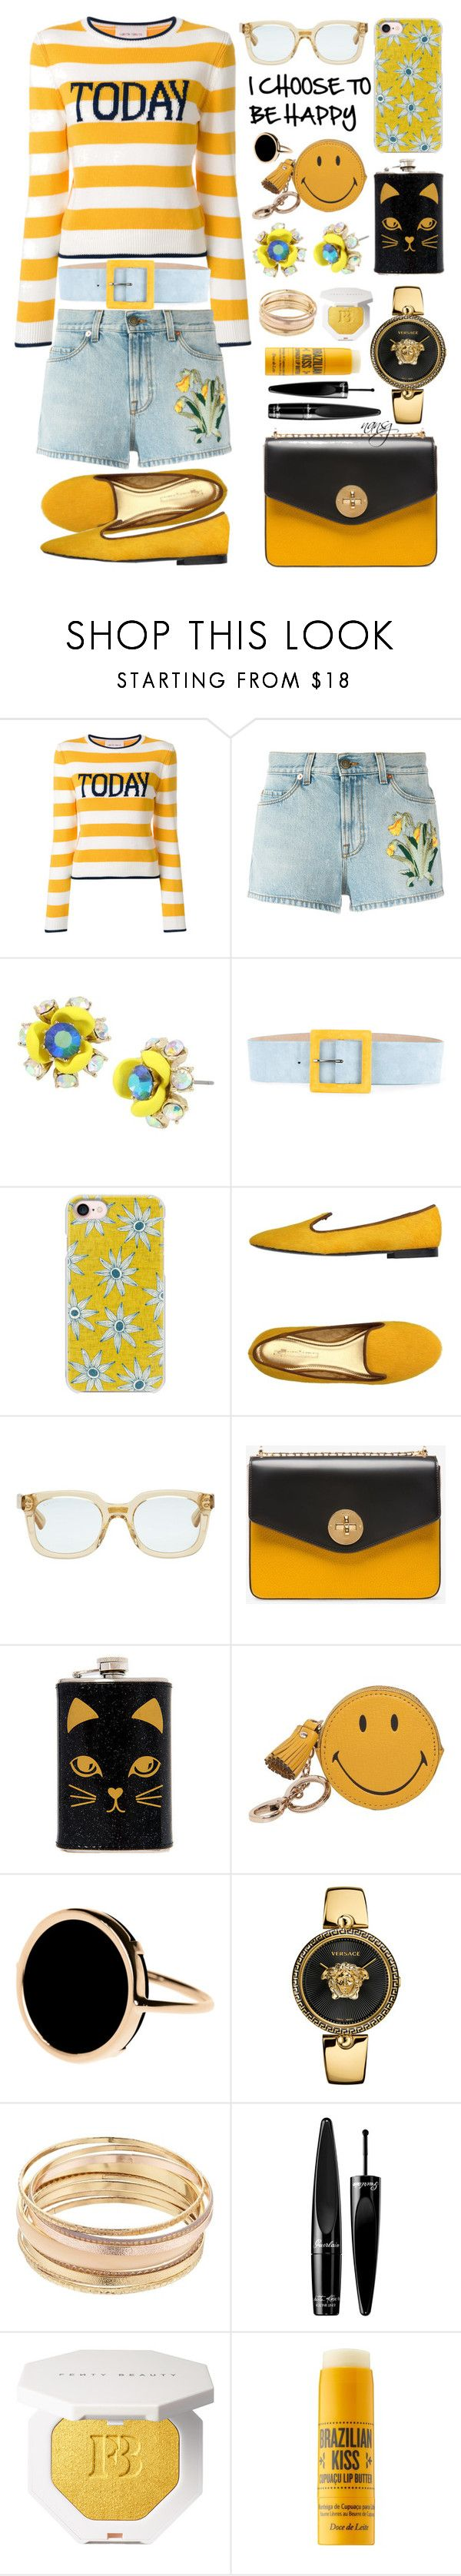 """BE HAPPY! :)"" by nans0717 ❤ liked on Polyvore featuring Alberta Ferretti, Gucci, Betsey Johnson, CH Carolina Herrera, Casetify, Avec Modération, Bally, Anya Hindmarch, Ginette NY and Versace"